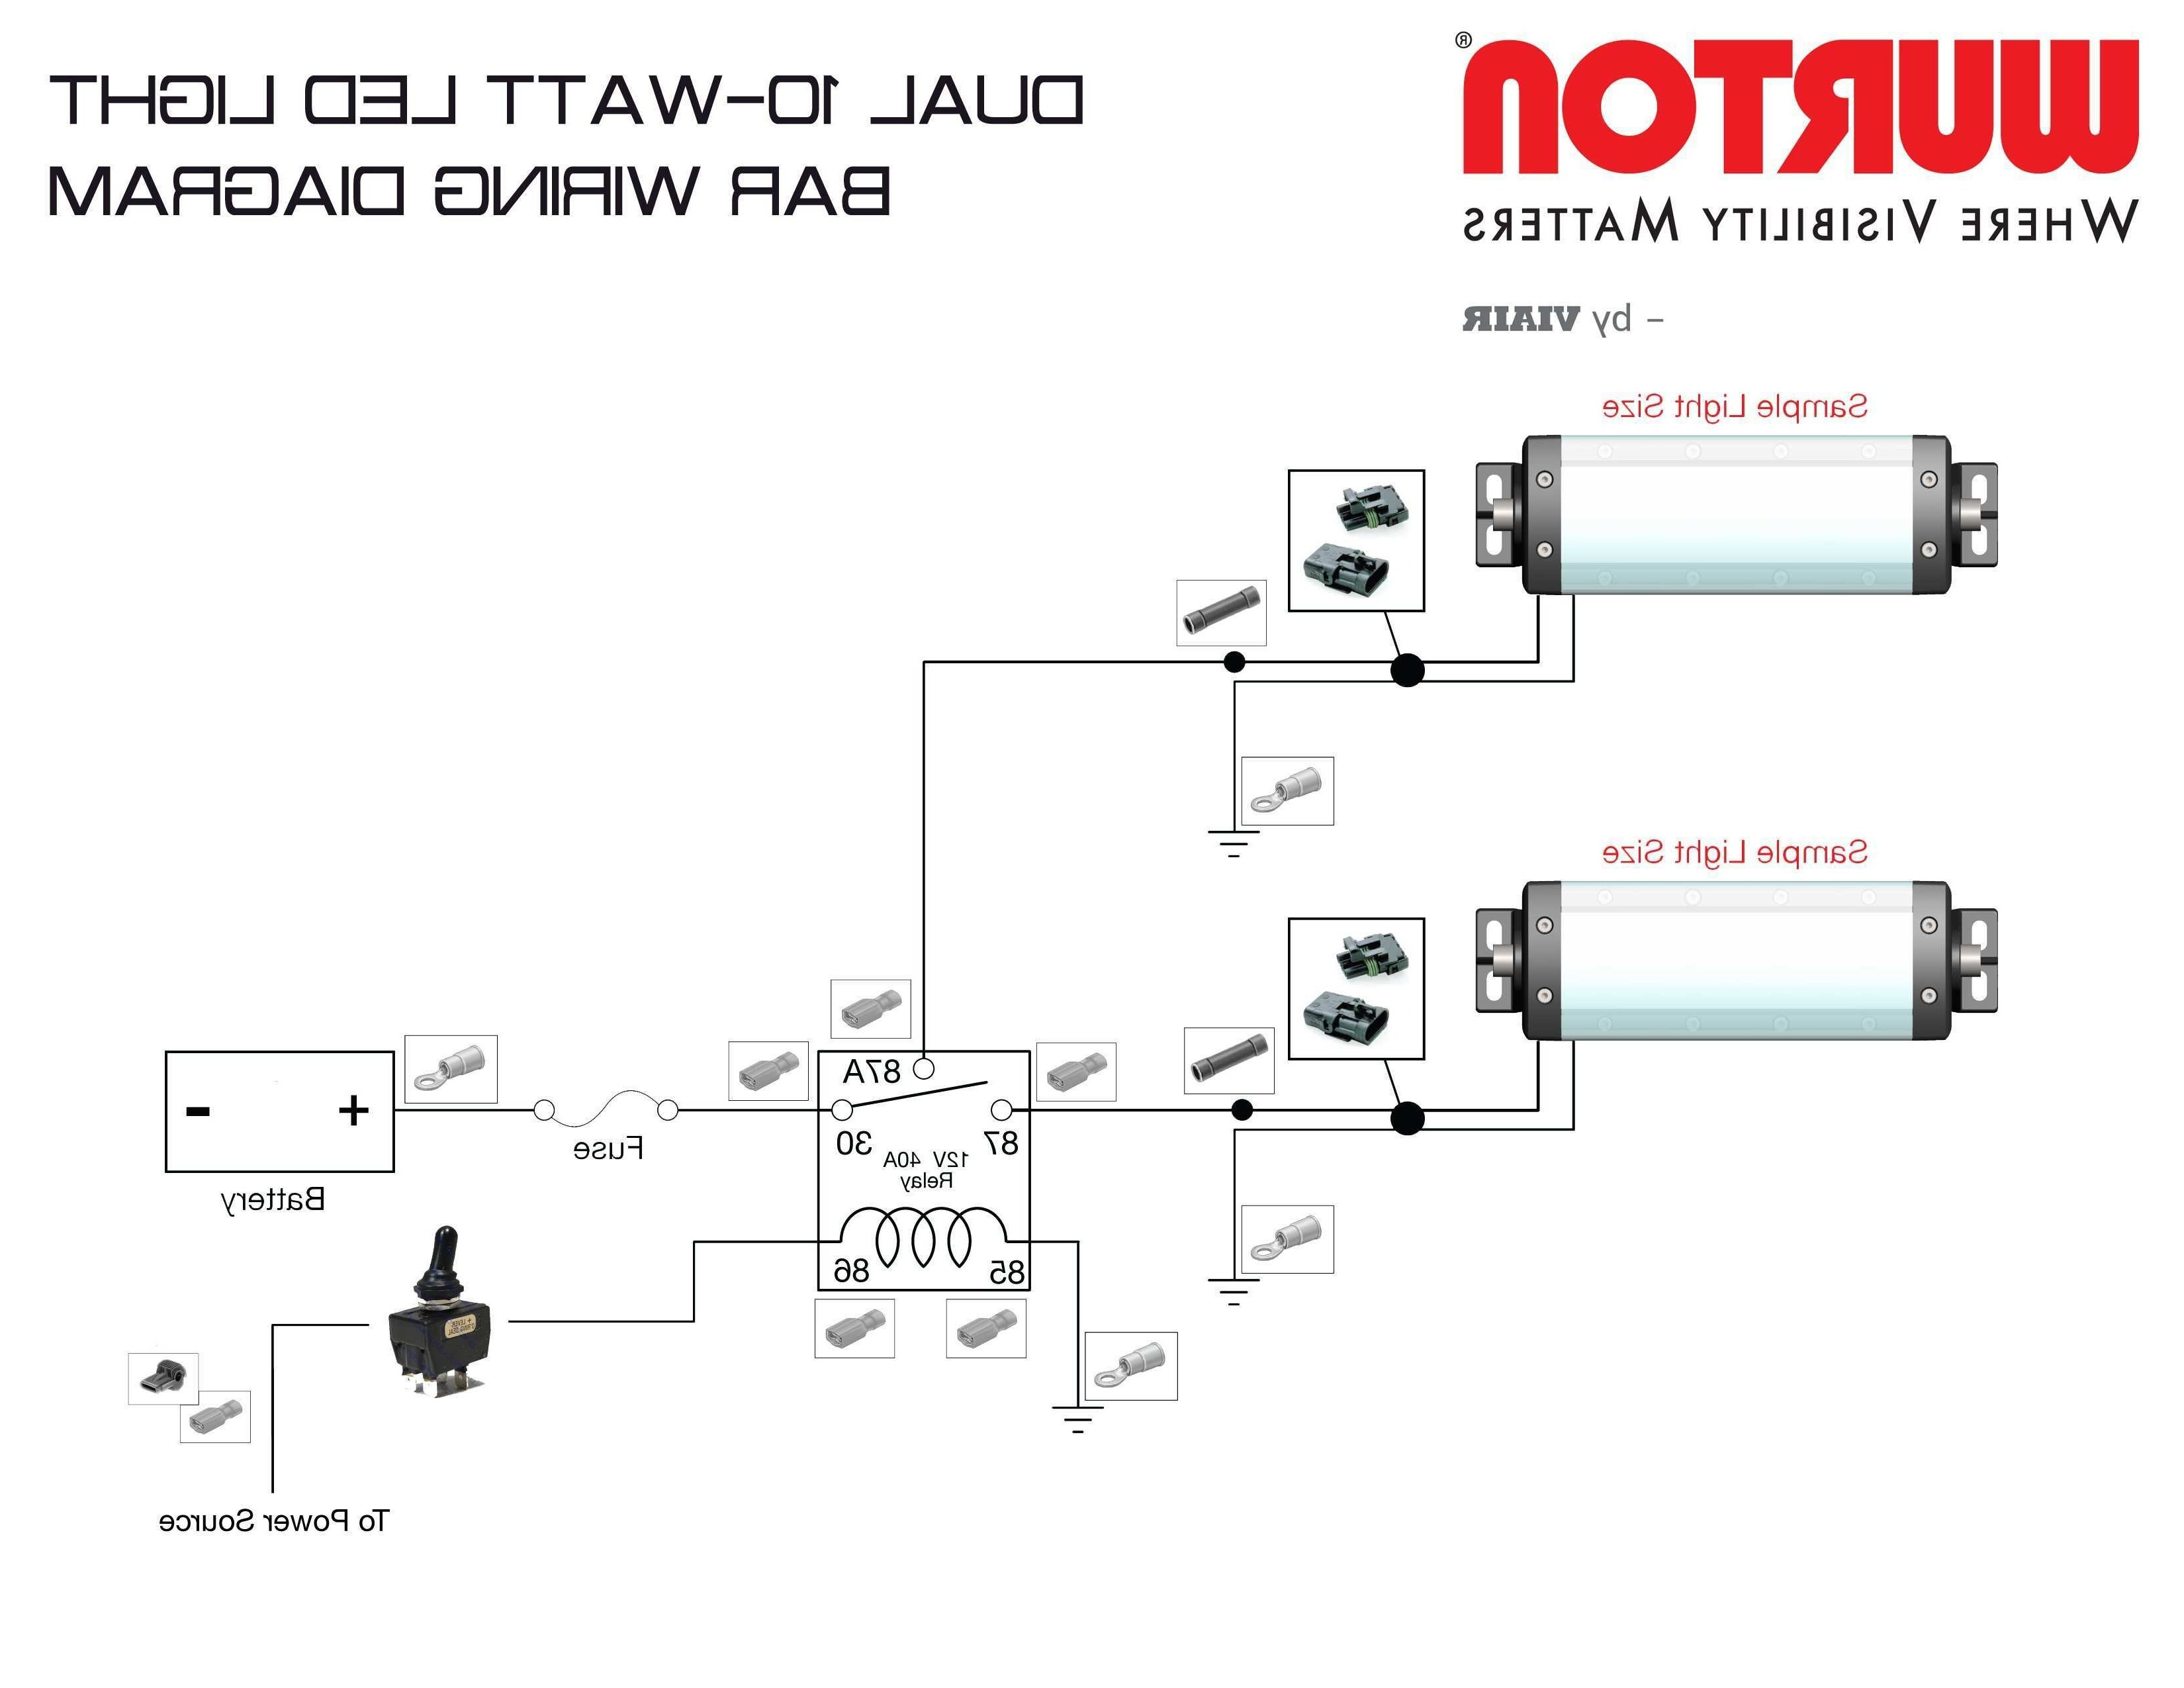 Maxxima Led Tail Lights Wiring Diagram | Wiring Diagram - 3 Wire Led Tail Light Wiring Diagram